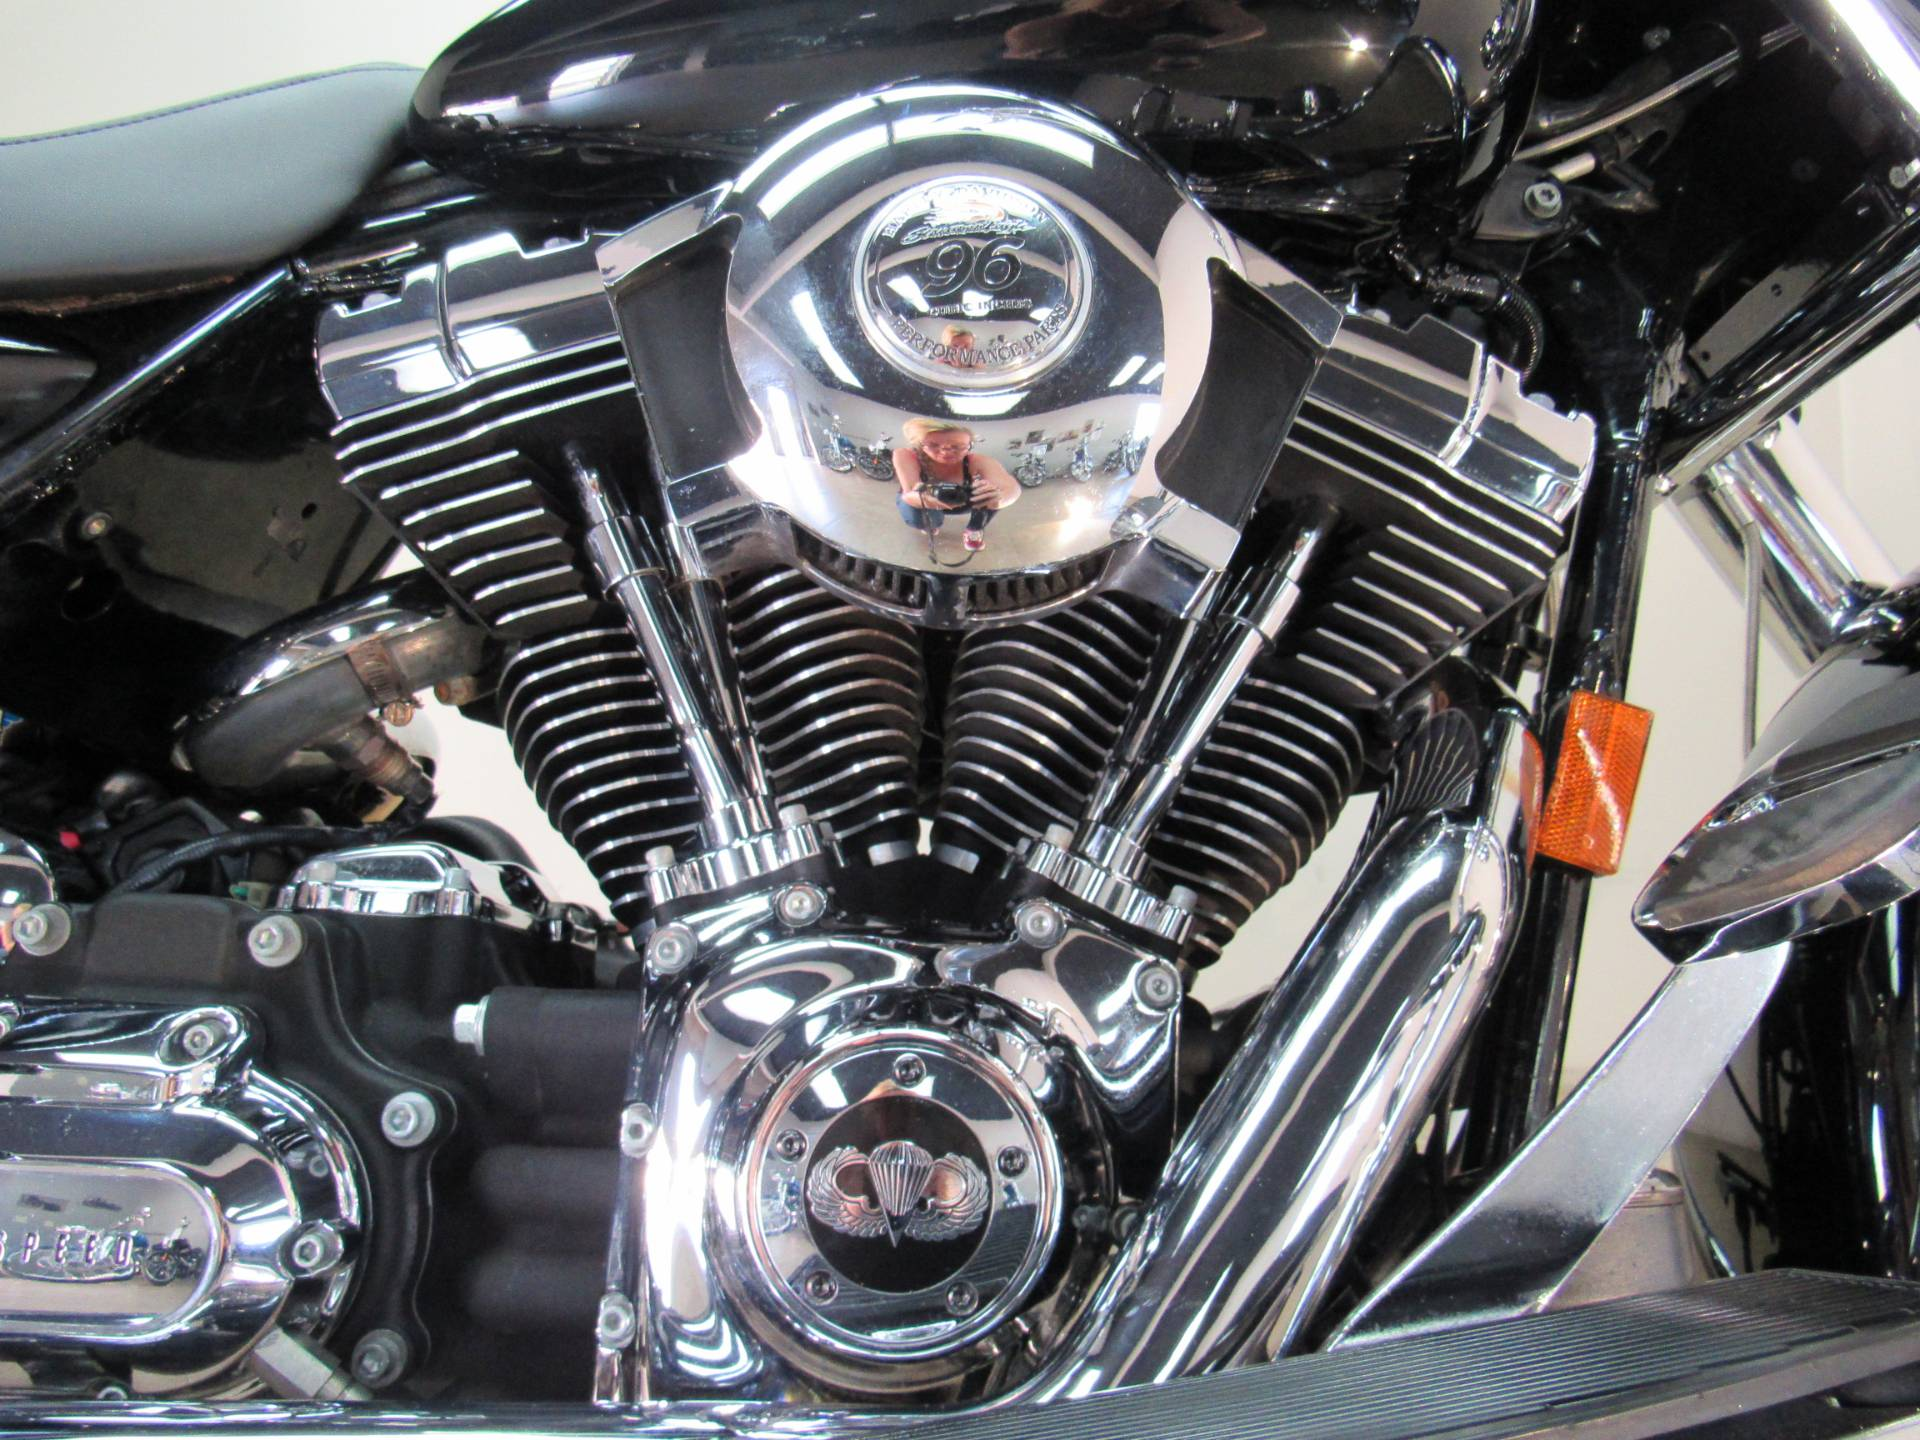 2007 Harley-Davidson FLHRC Road King® Classic in Temecula, California - Photo 18